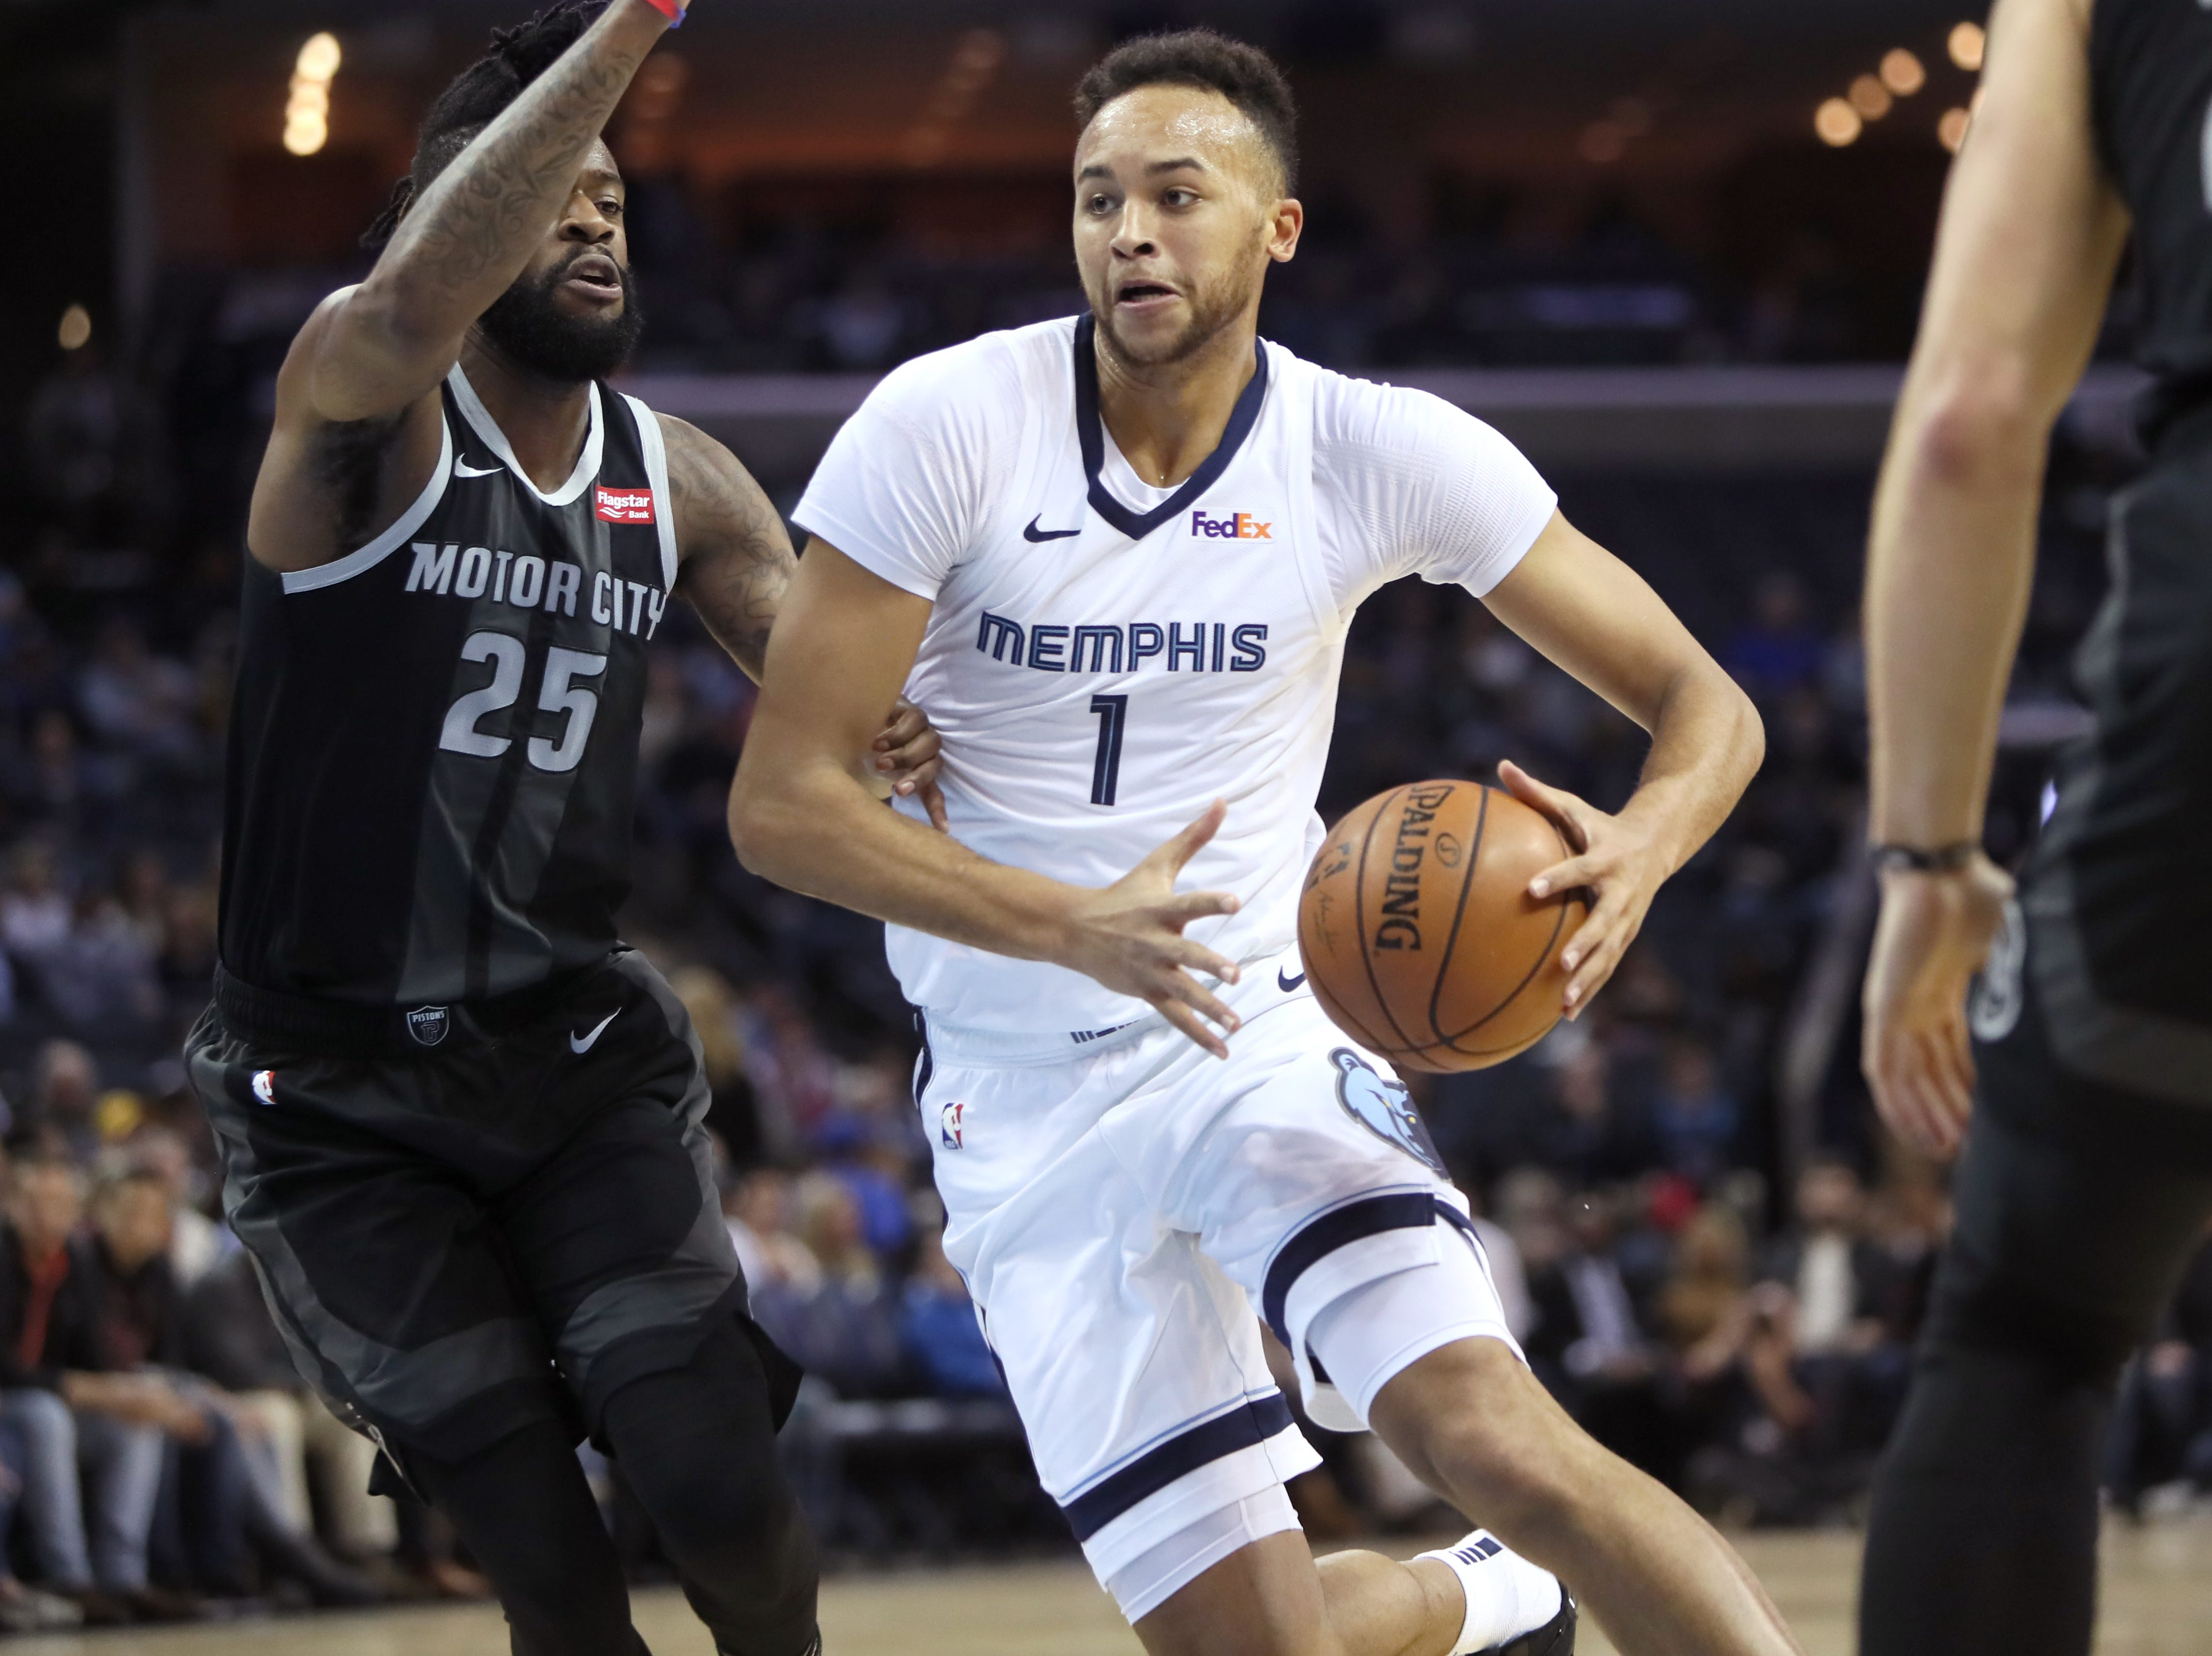 Memphis Grizzlies guard Kyle Anderson drives past Detroit Pistons guard Reggie Bullock during their game at the FedExForum on Wednesday, January 2, 2019.